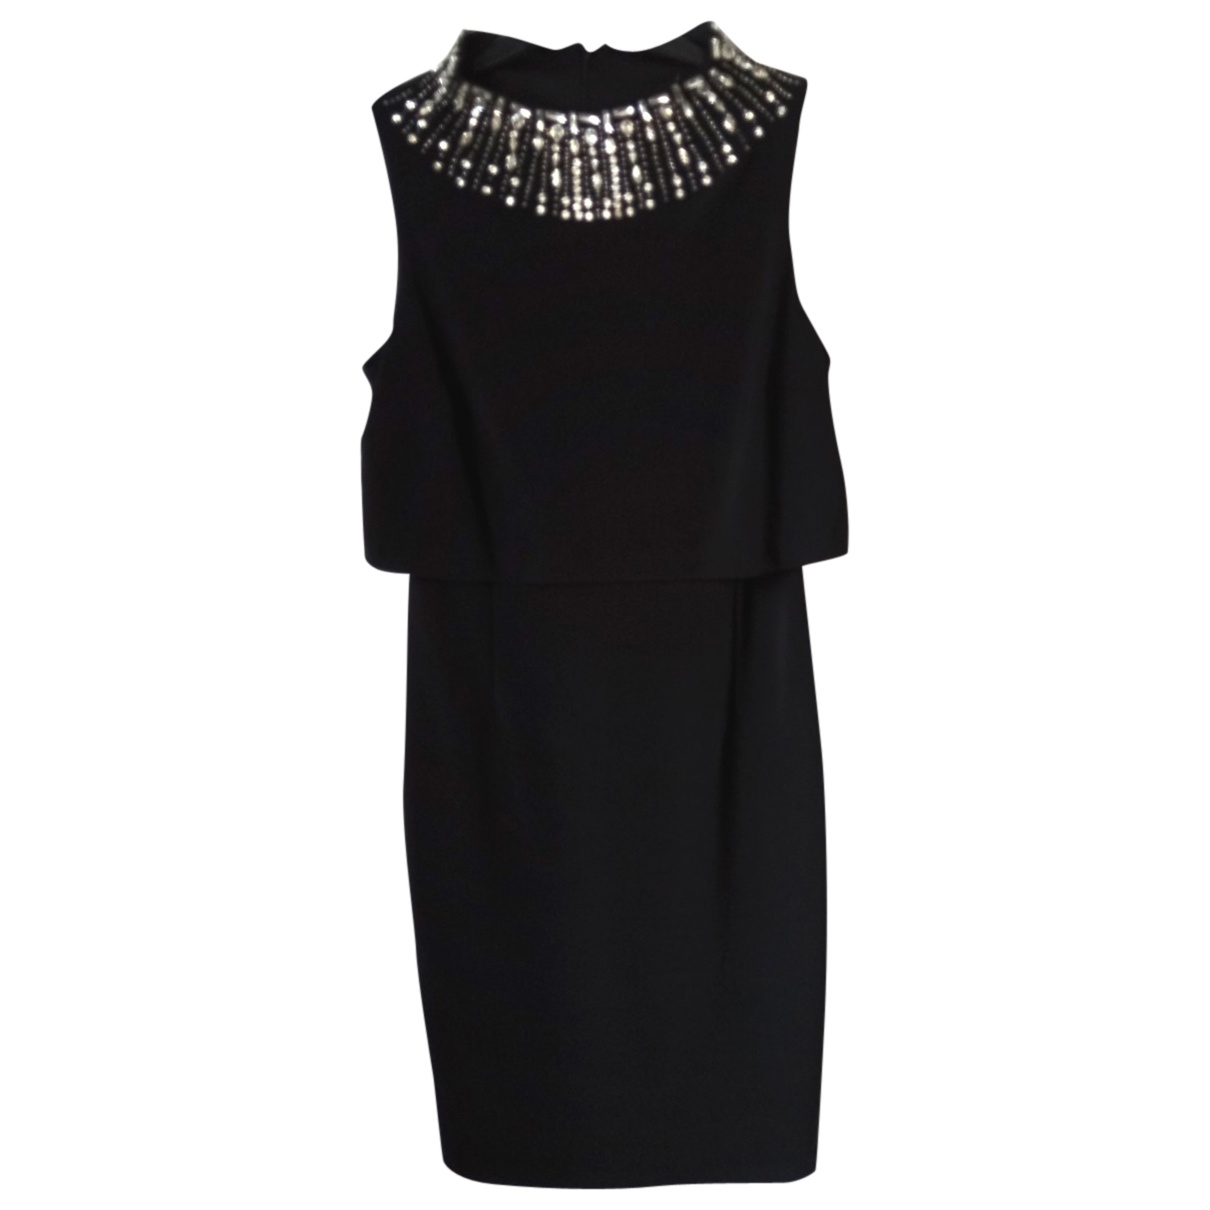 Joseph Ribkoff \N Black dress for Women 8 UK